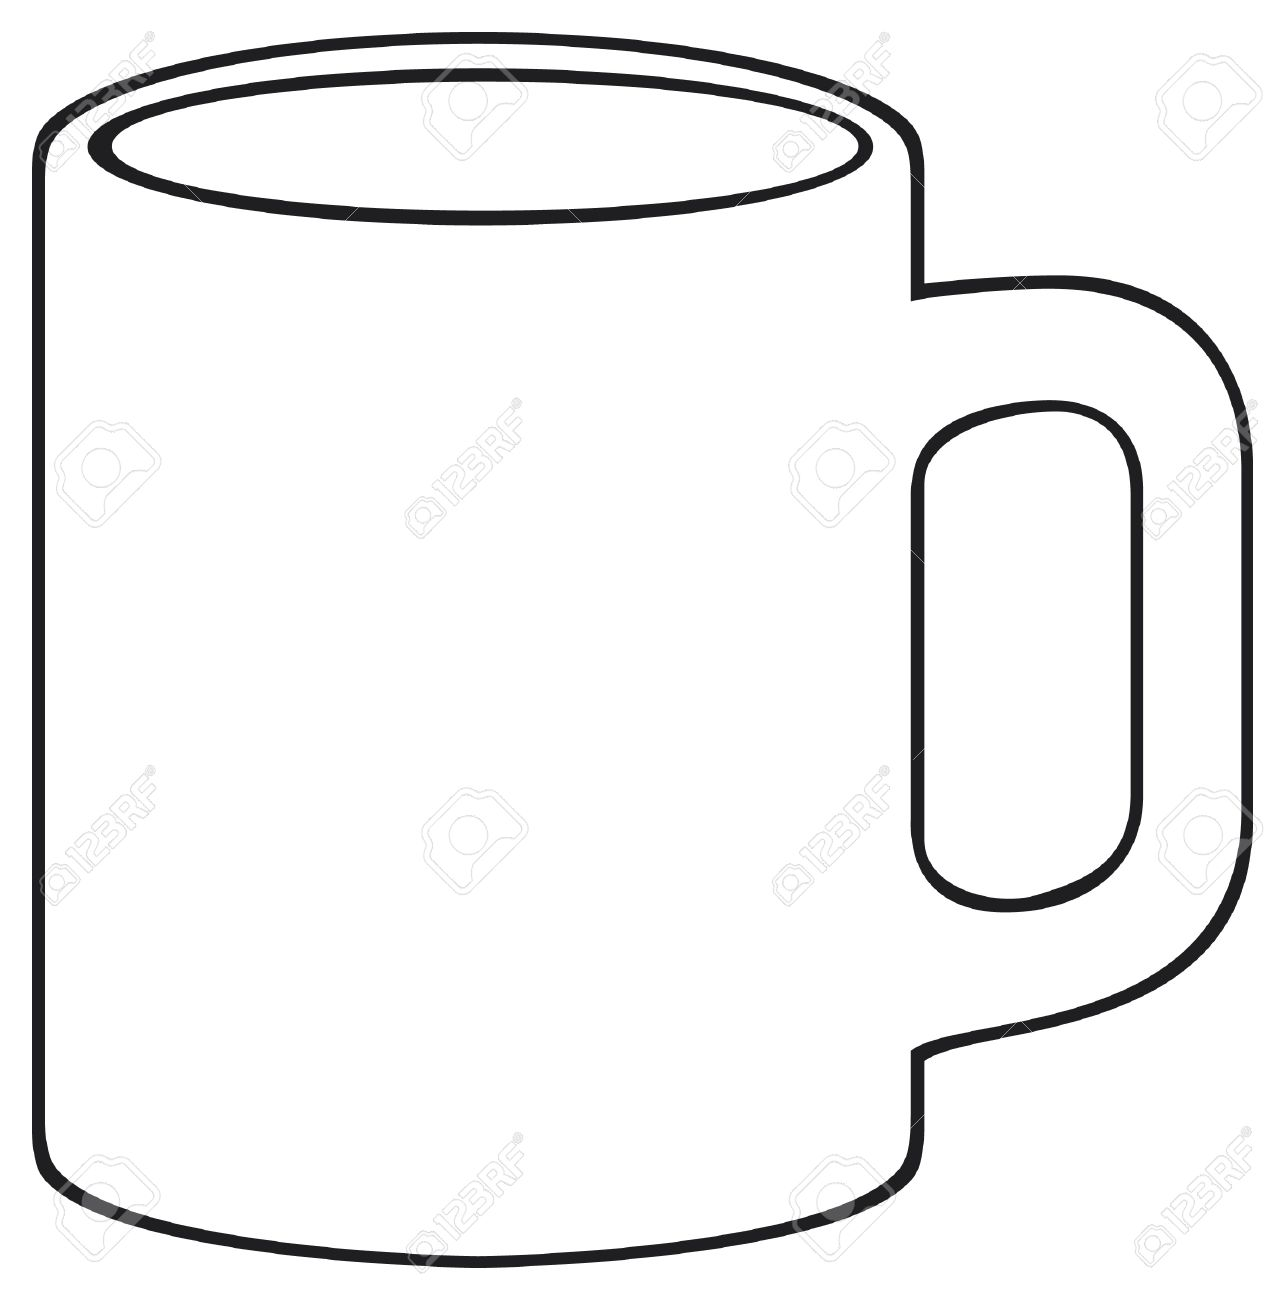 Mug clipart. Coffee backgrounds wallpaper cover